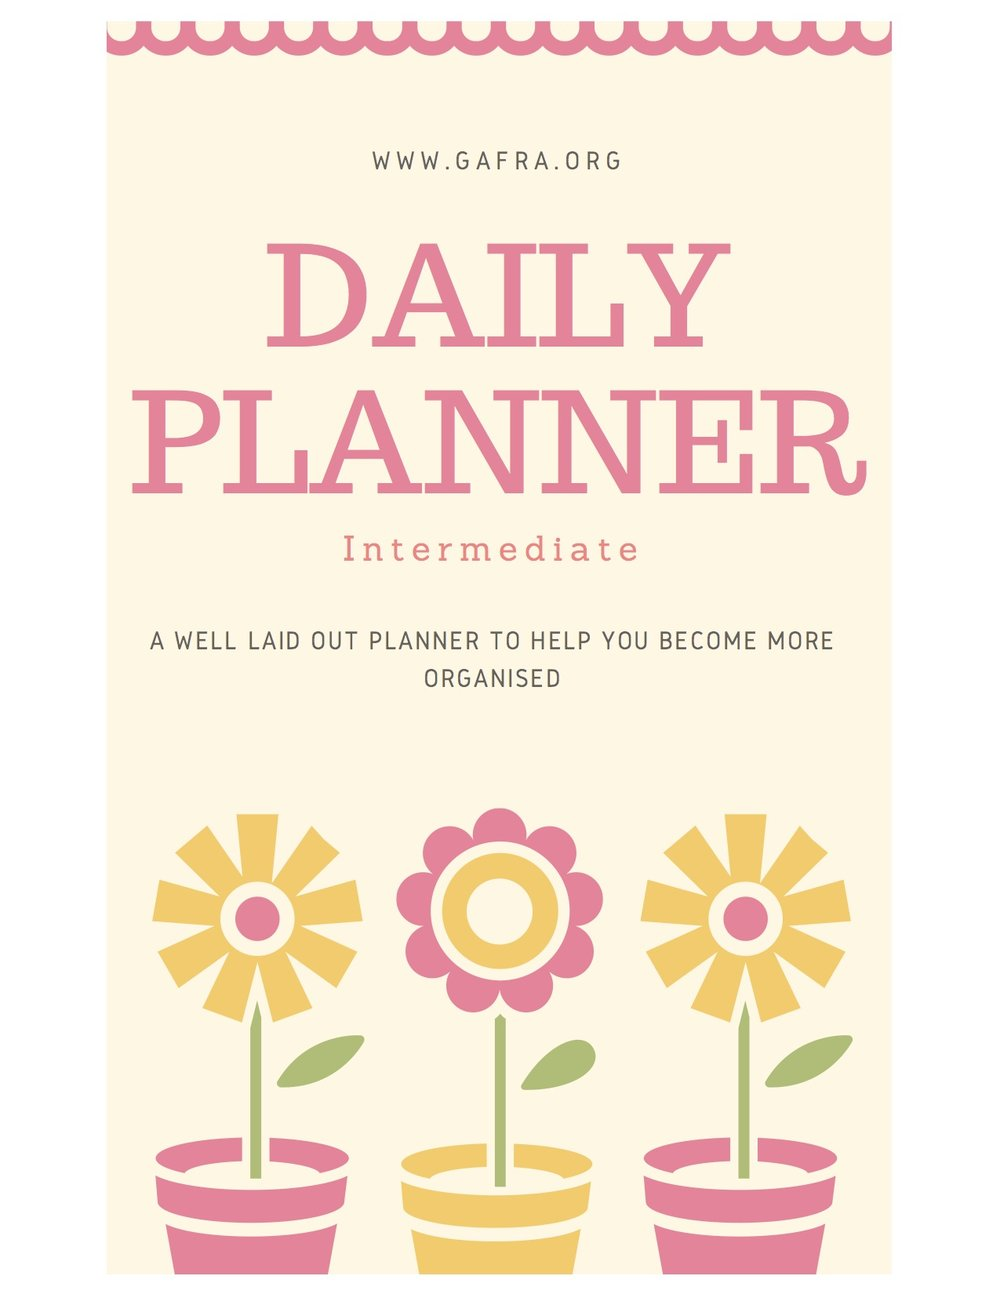 Get you pretty Daily Planner. For you Girly, Girls. It's just the cutest.  www.gafra.org